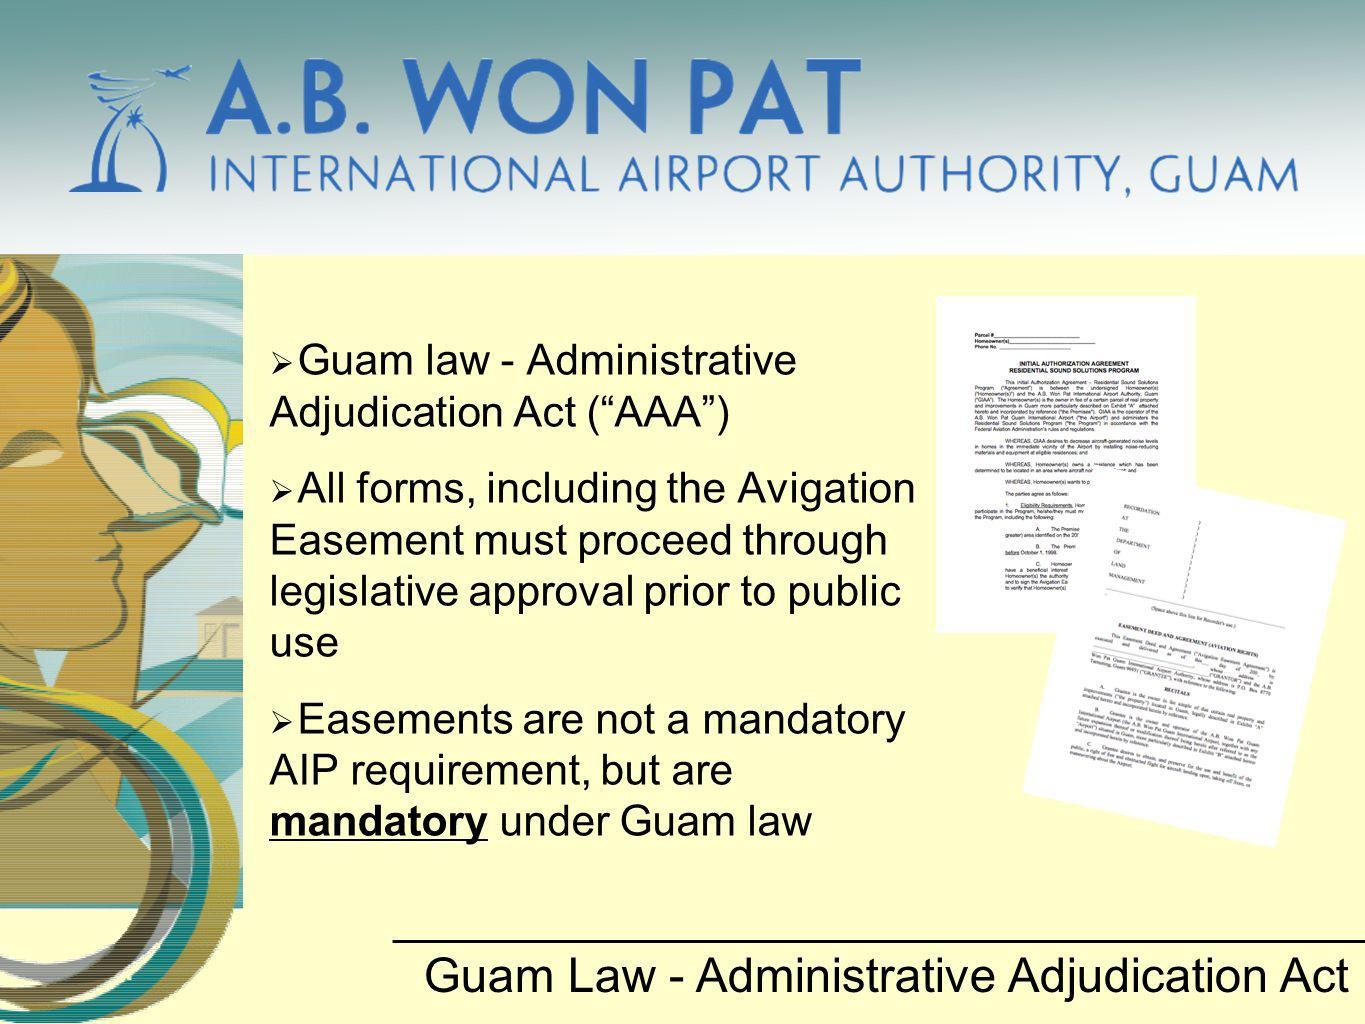 Guam Law - Administrative Adjudication Act